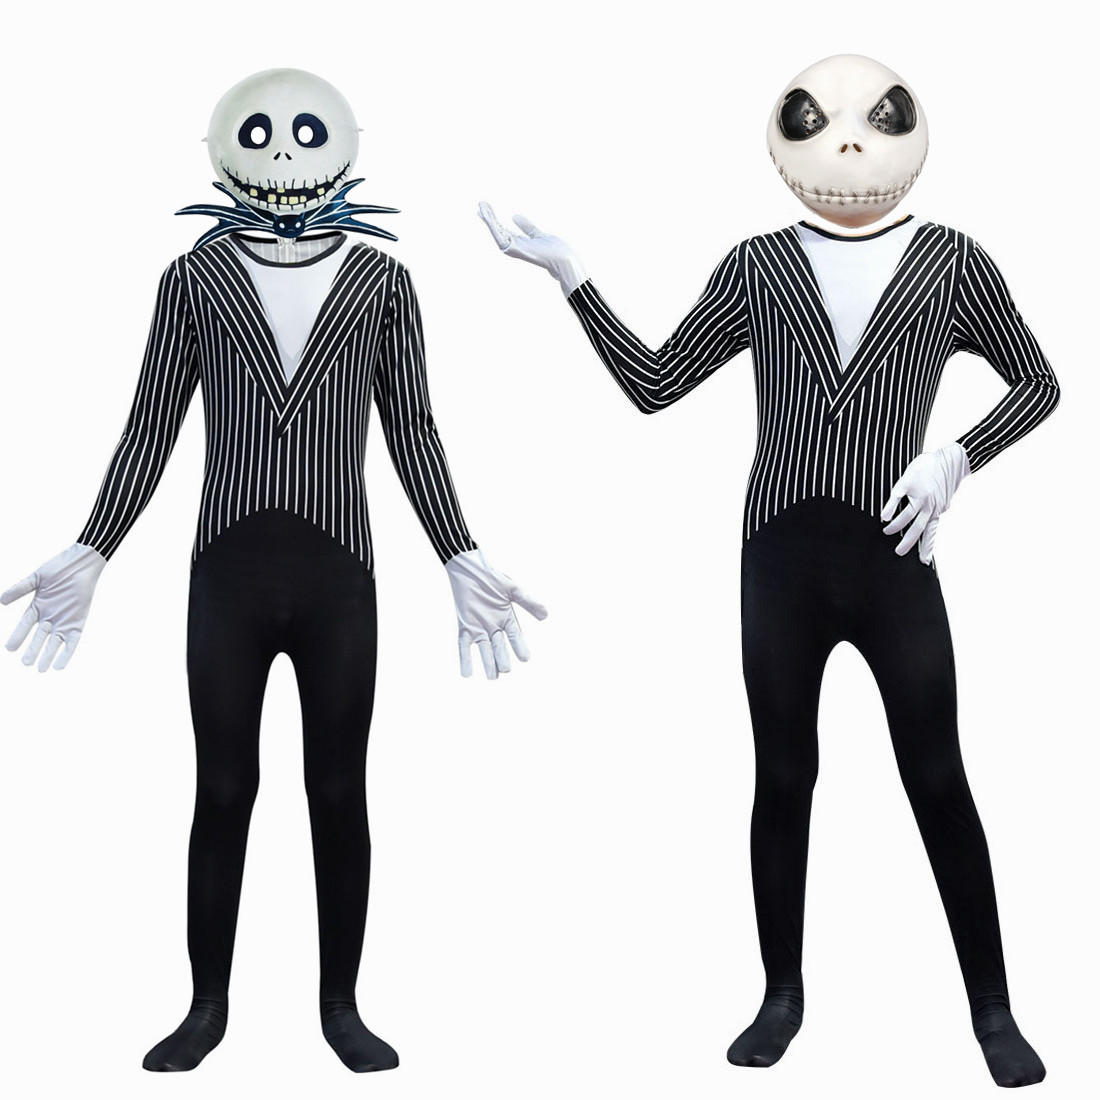 Jack From The Nightmare Before Christmas Costume For Kids Funny Party Costume Cosplay Halloween Boys Mask Costuming For Children